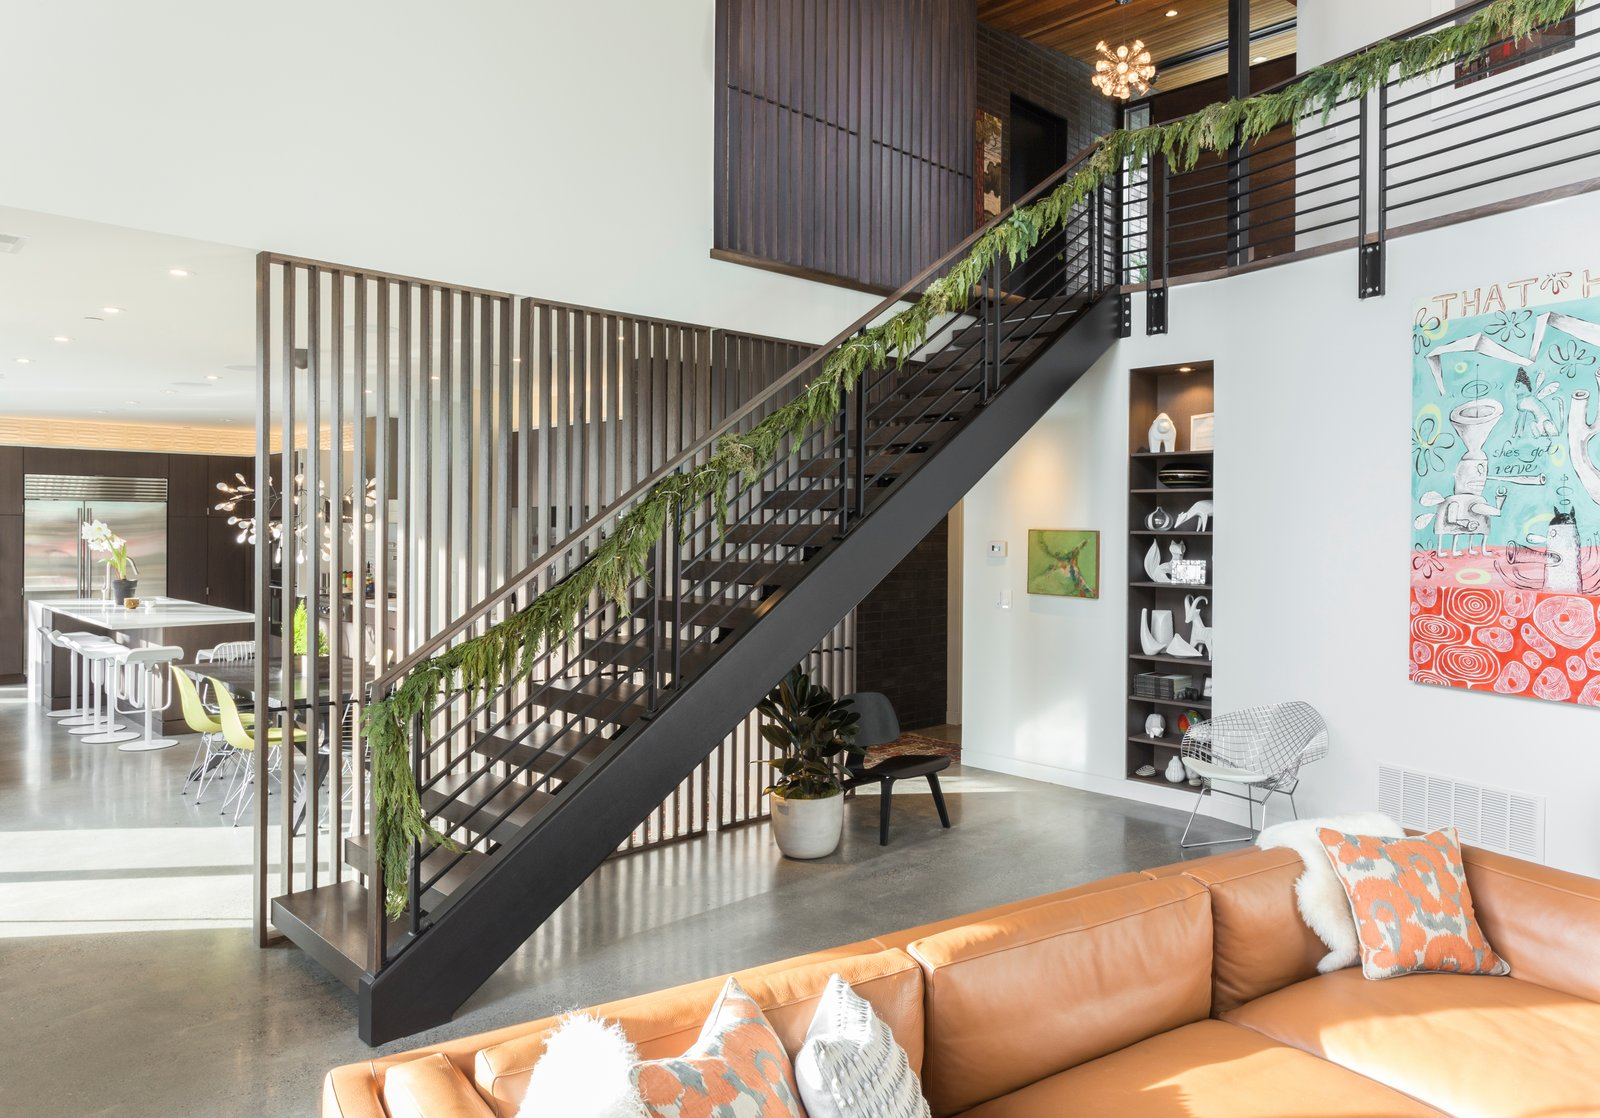 Living Room, Bookcase, Accent Lighting, Pendant Lighting, Ceiling Lighting, Recessed Lighting, Chair, Concrete Floor, and Sectional Entry stair  The Greenhills House